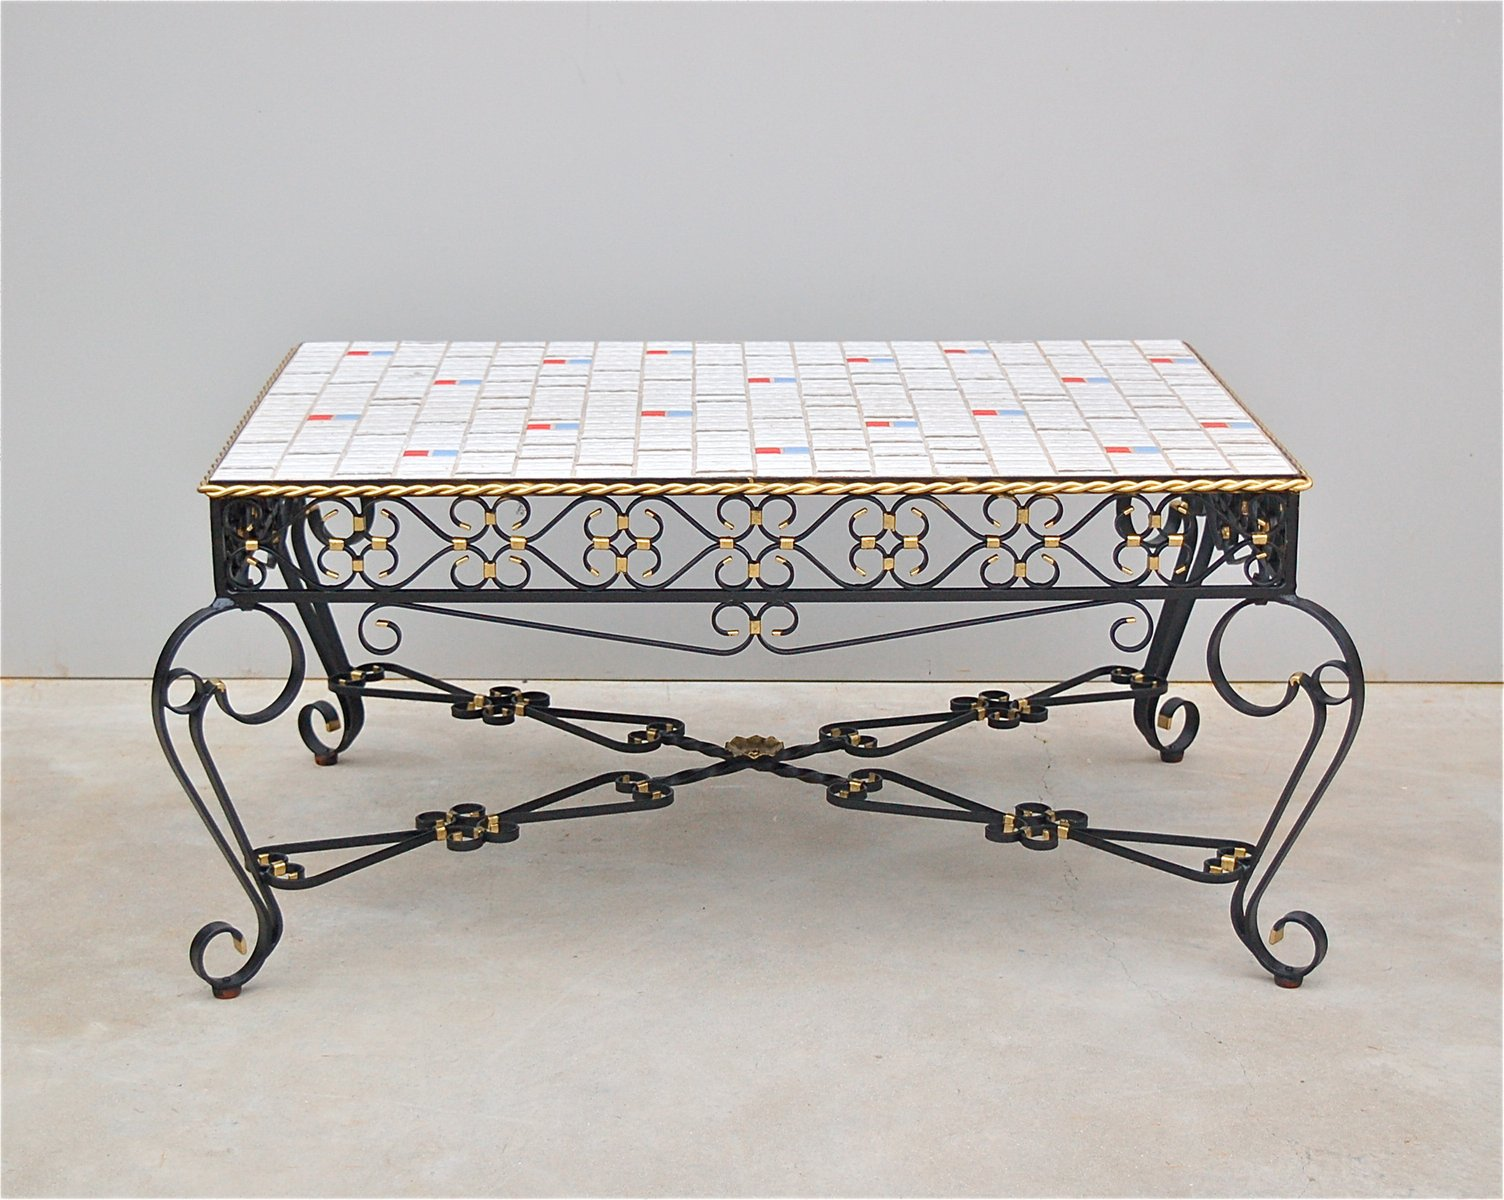 Wrought metal ceramic tile coffee table 1971 for sale at pamono wrought metal ceramic tile coffee table 1971 dailygadgetfo Gallery